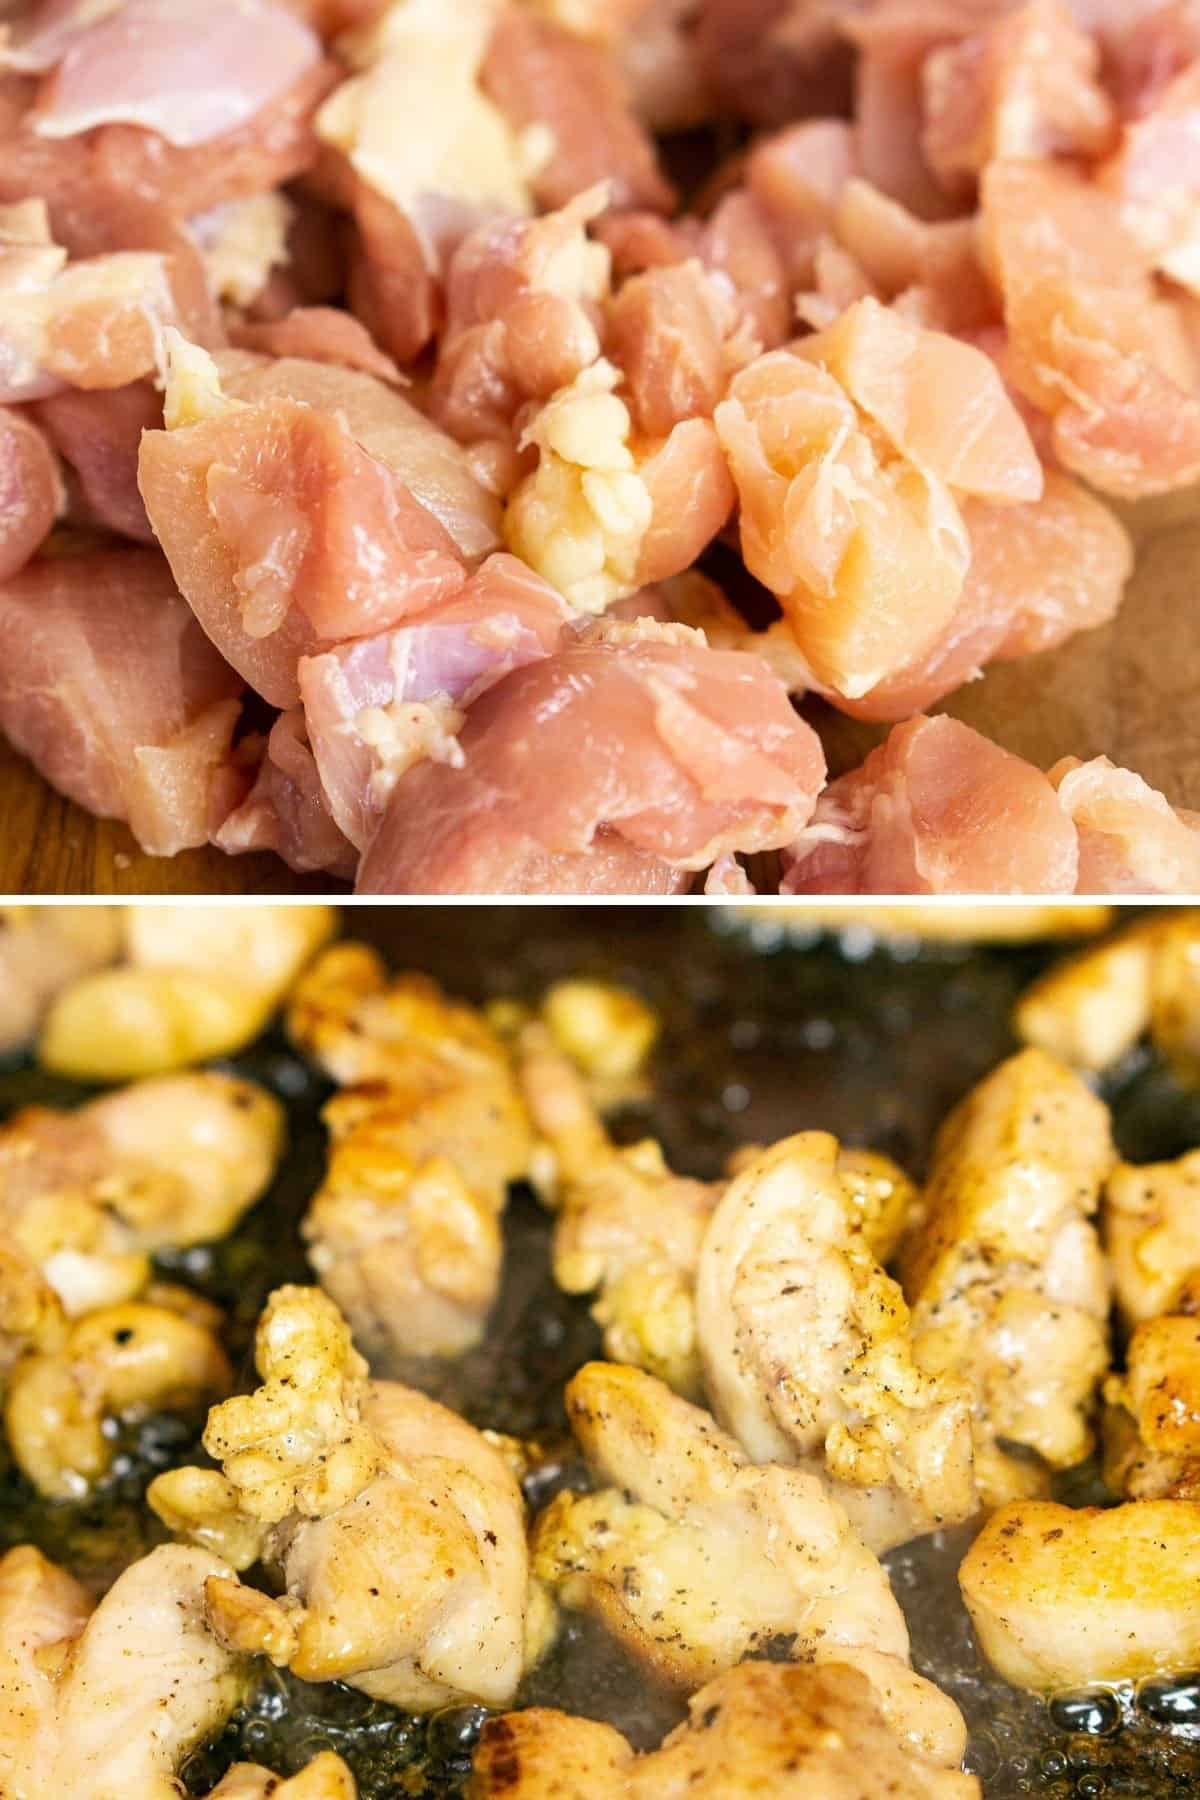 A collage showing the process of cooking the chicken from raw until it browns.